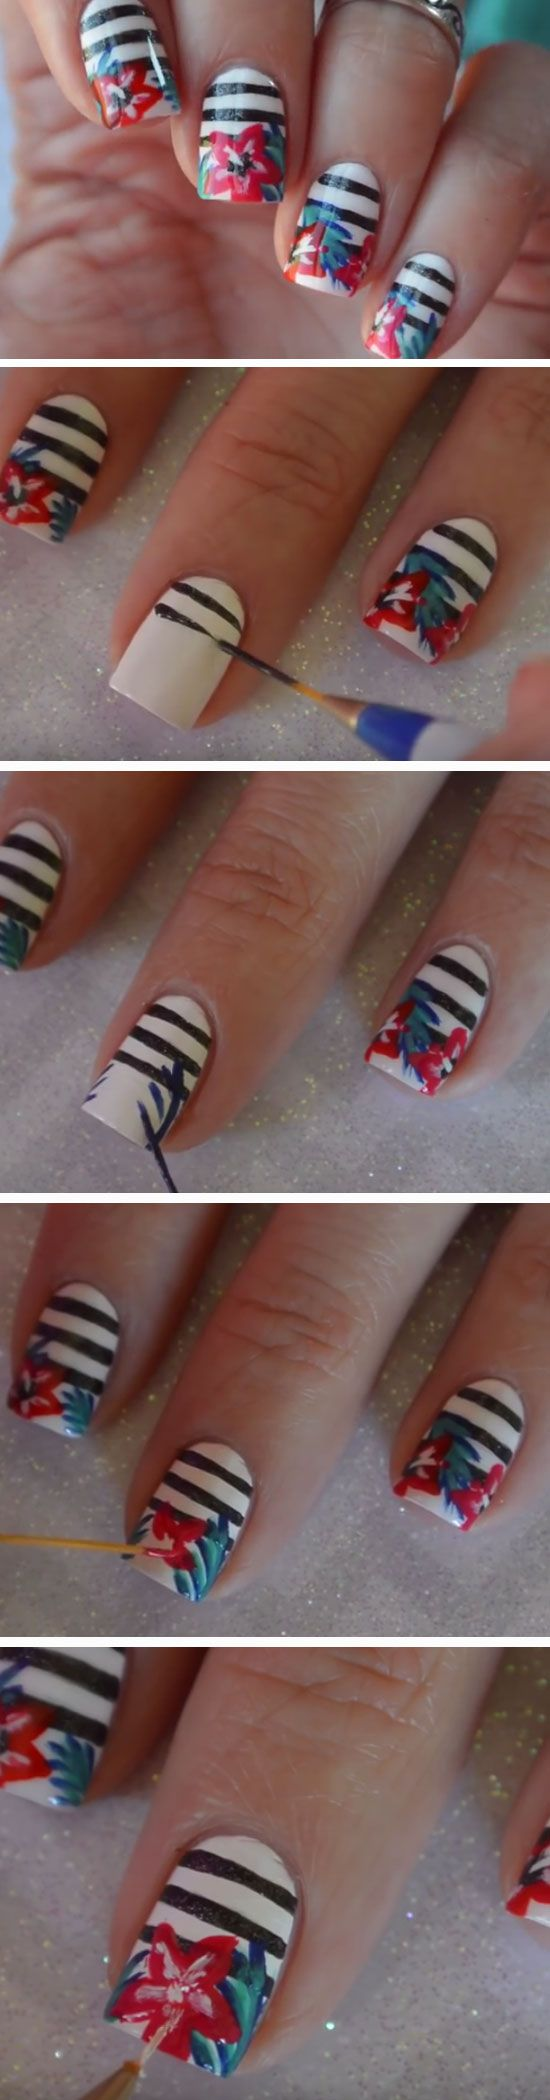 Tropical Stripes | 18 Funky Summer Nail Art Ideas for Short Nails that scream summer!